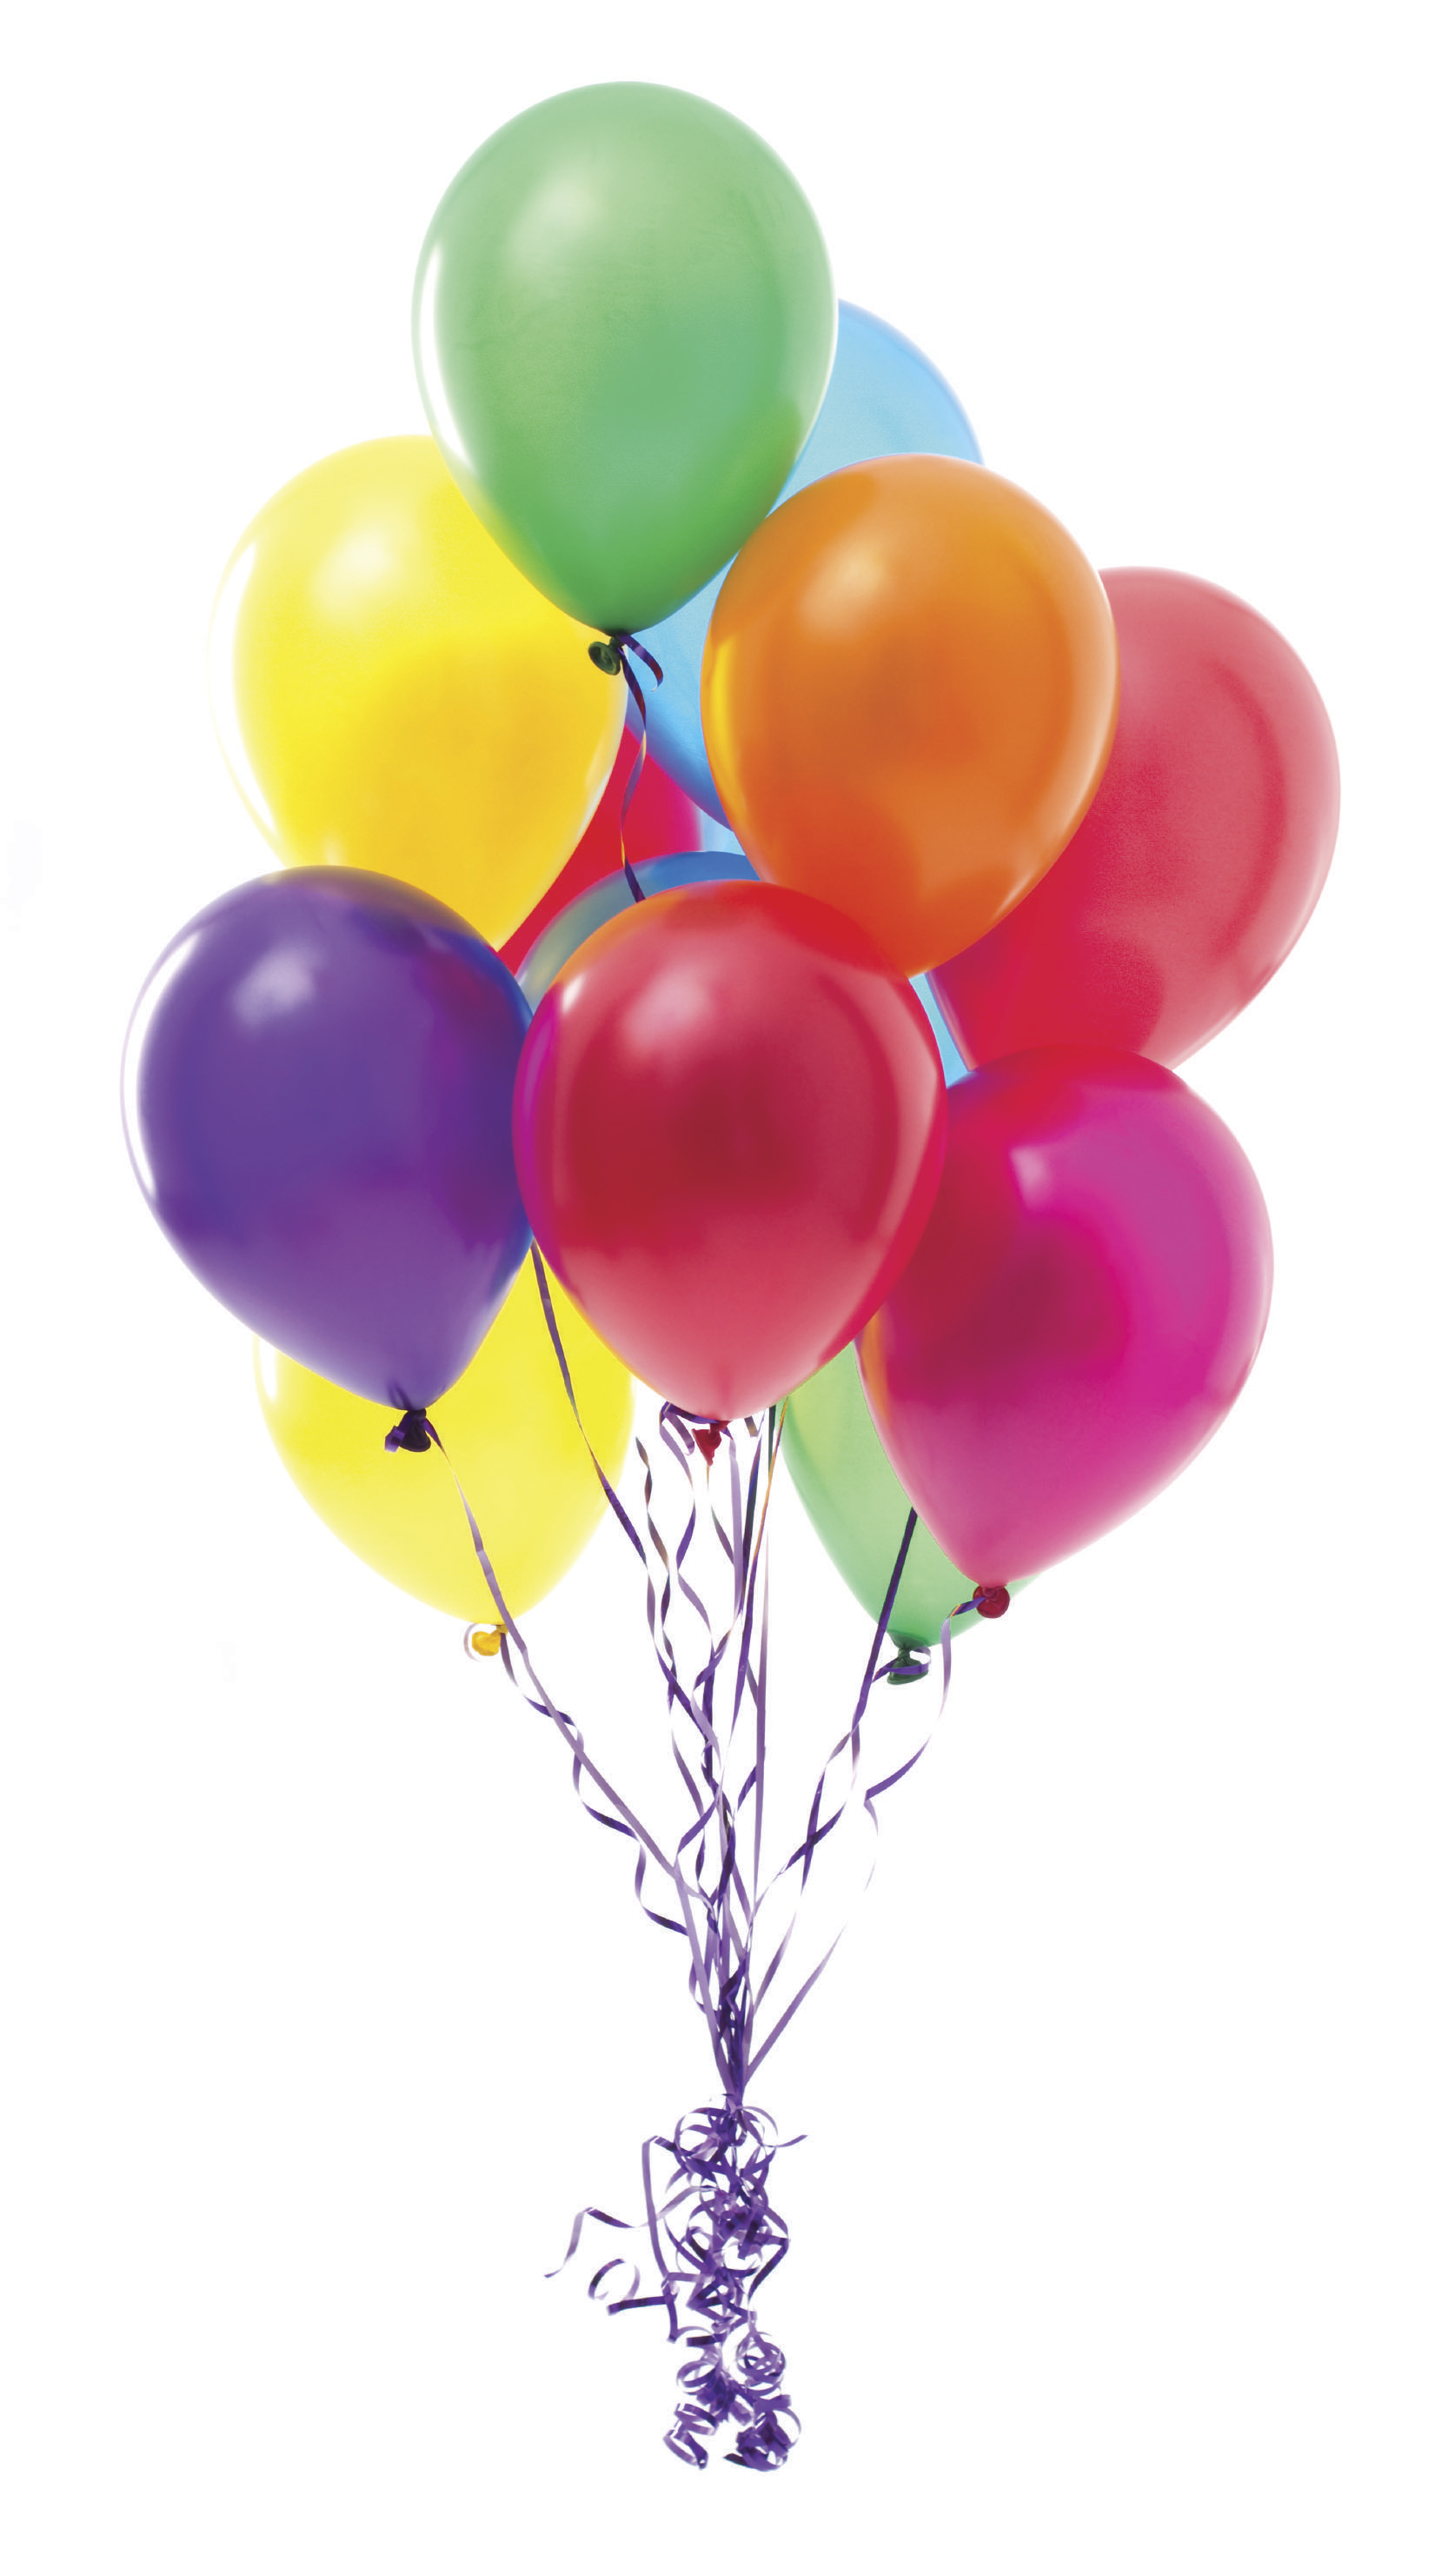 balloons rsvp food party outlet